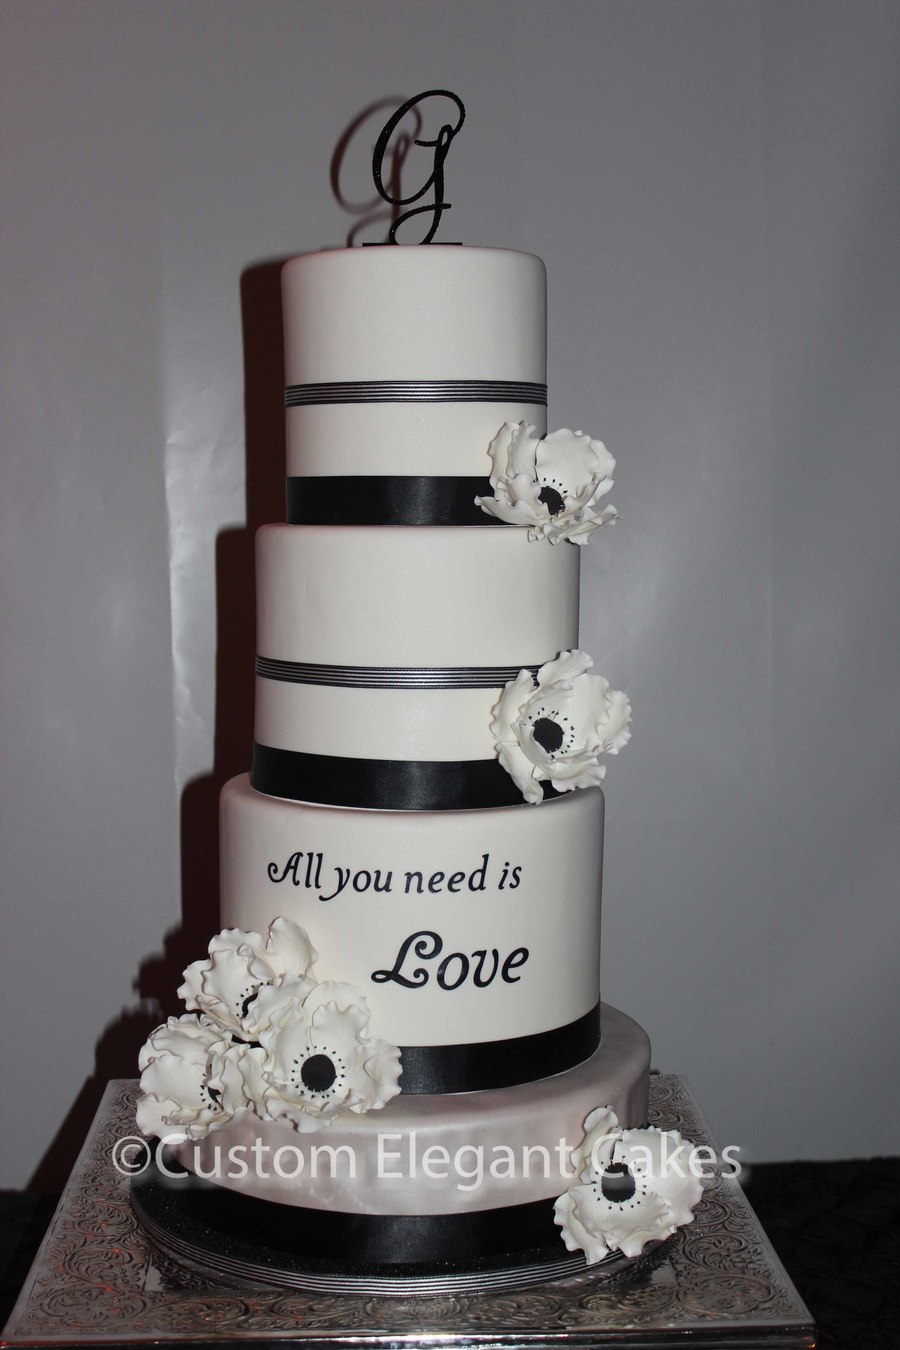 All You Need Is Love Wedding Cake on Cake Central